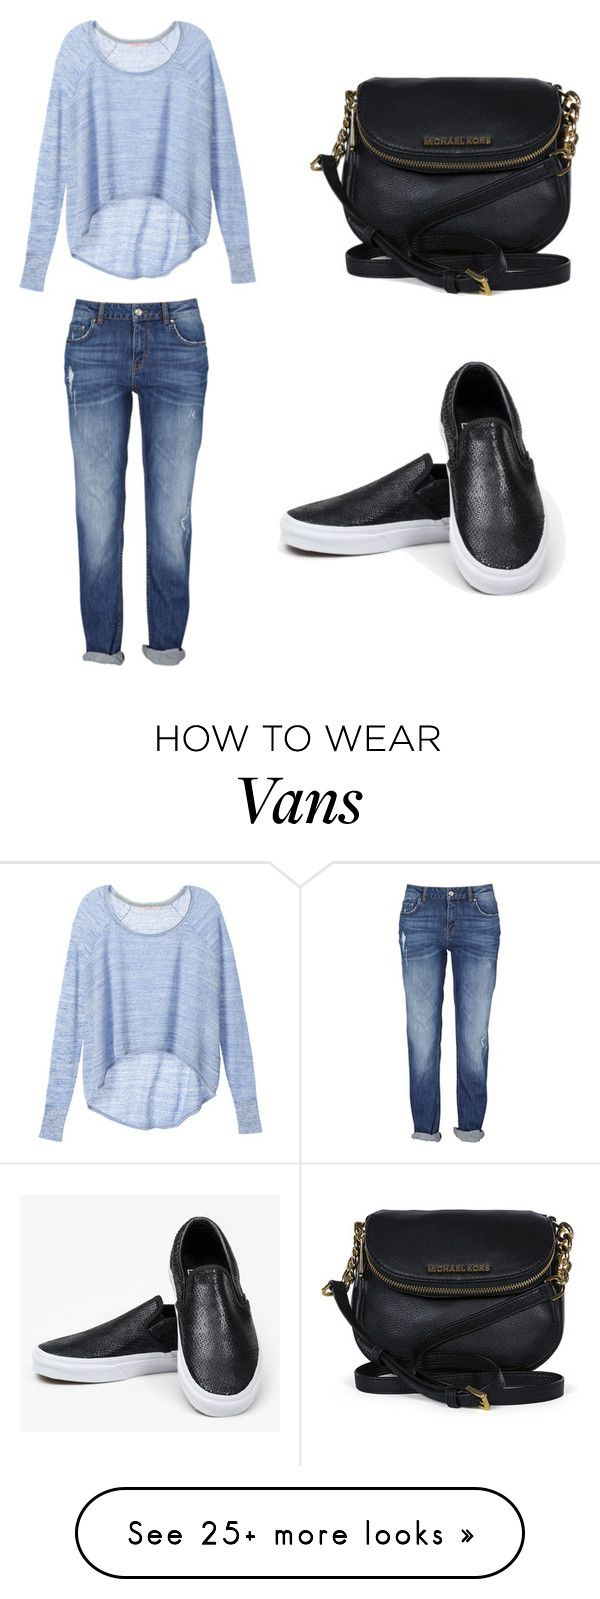 """""""Untitled #67"""" by erika-an on Polyvore featuring moda, Victoria's Secret, Vans y Michael Kors"""